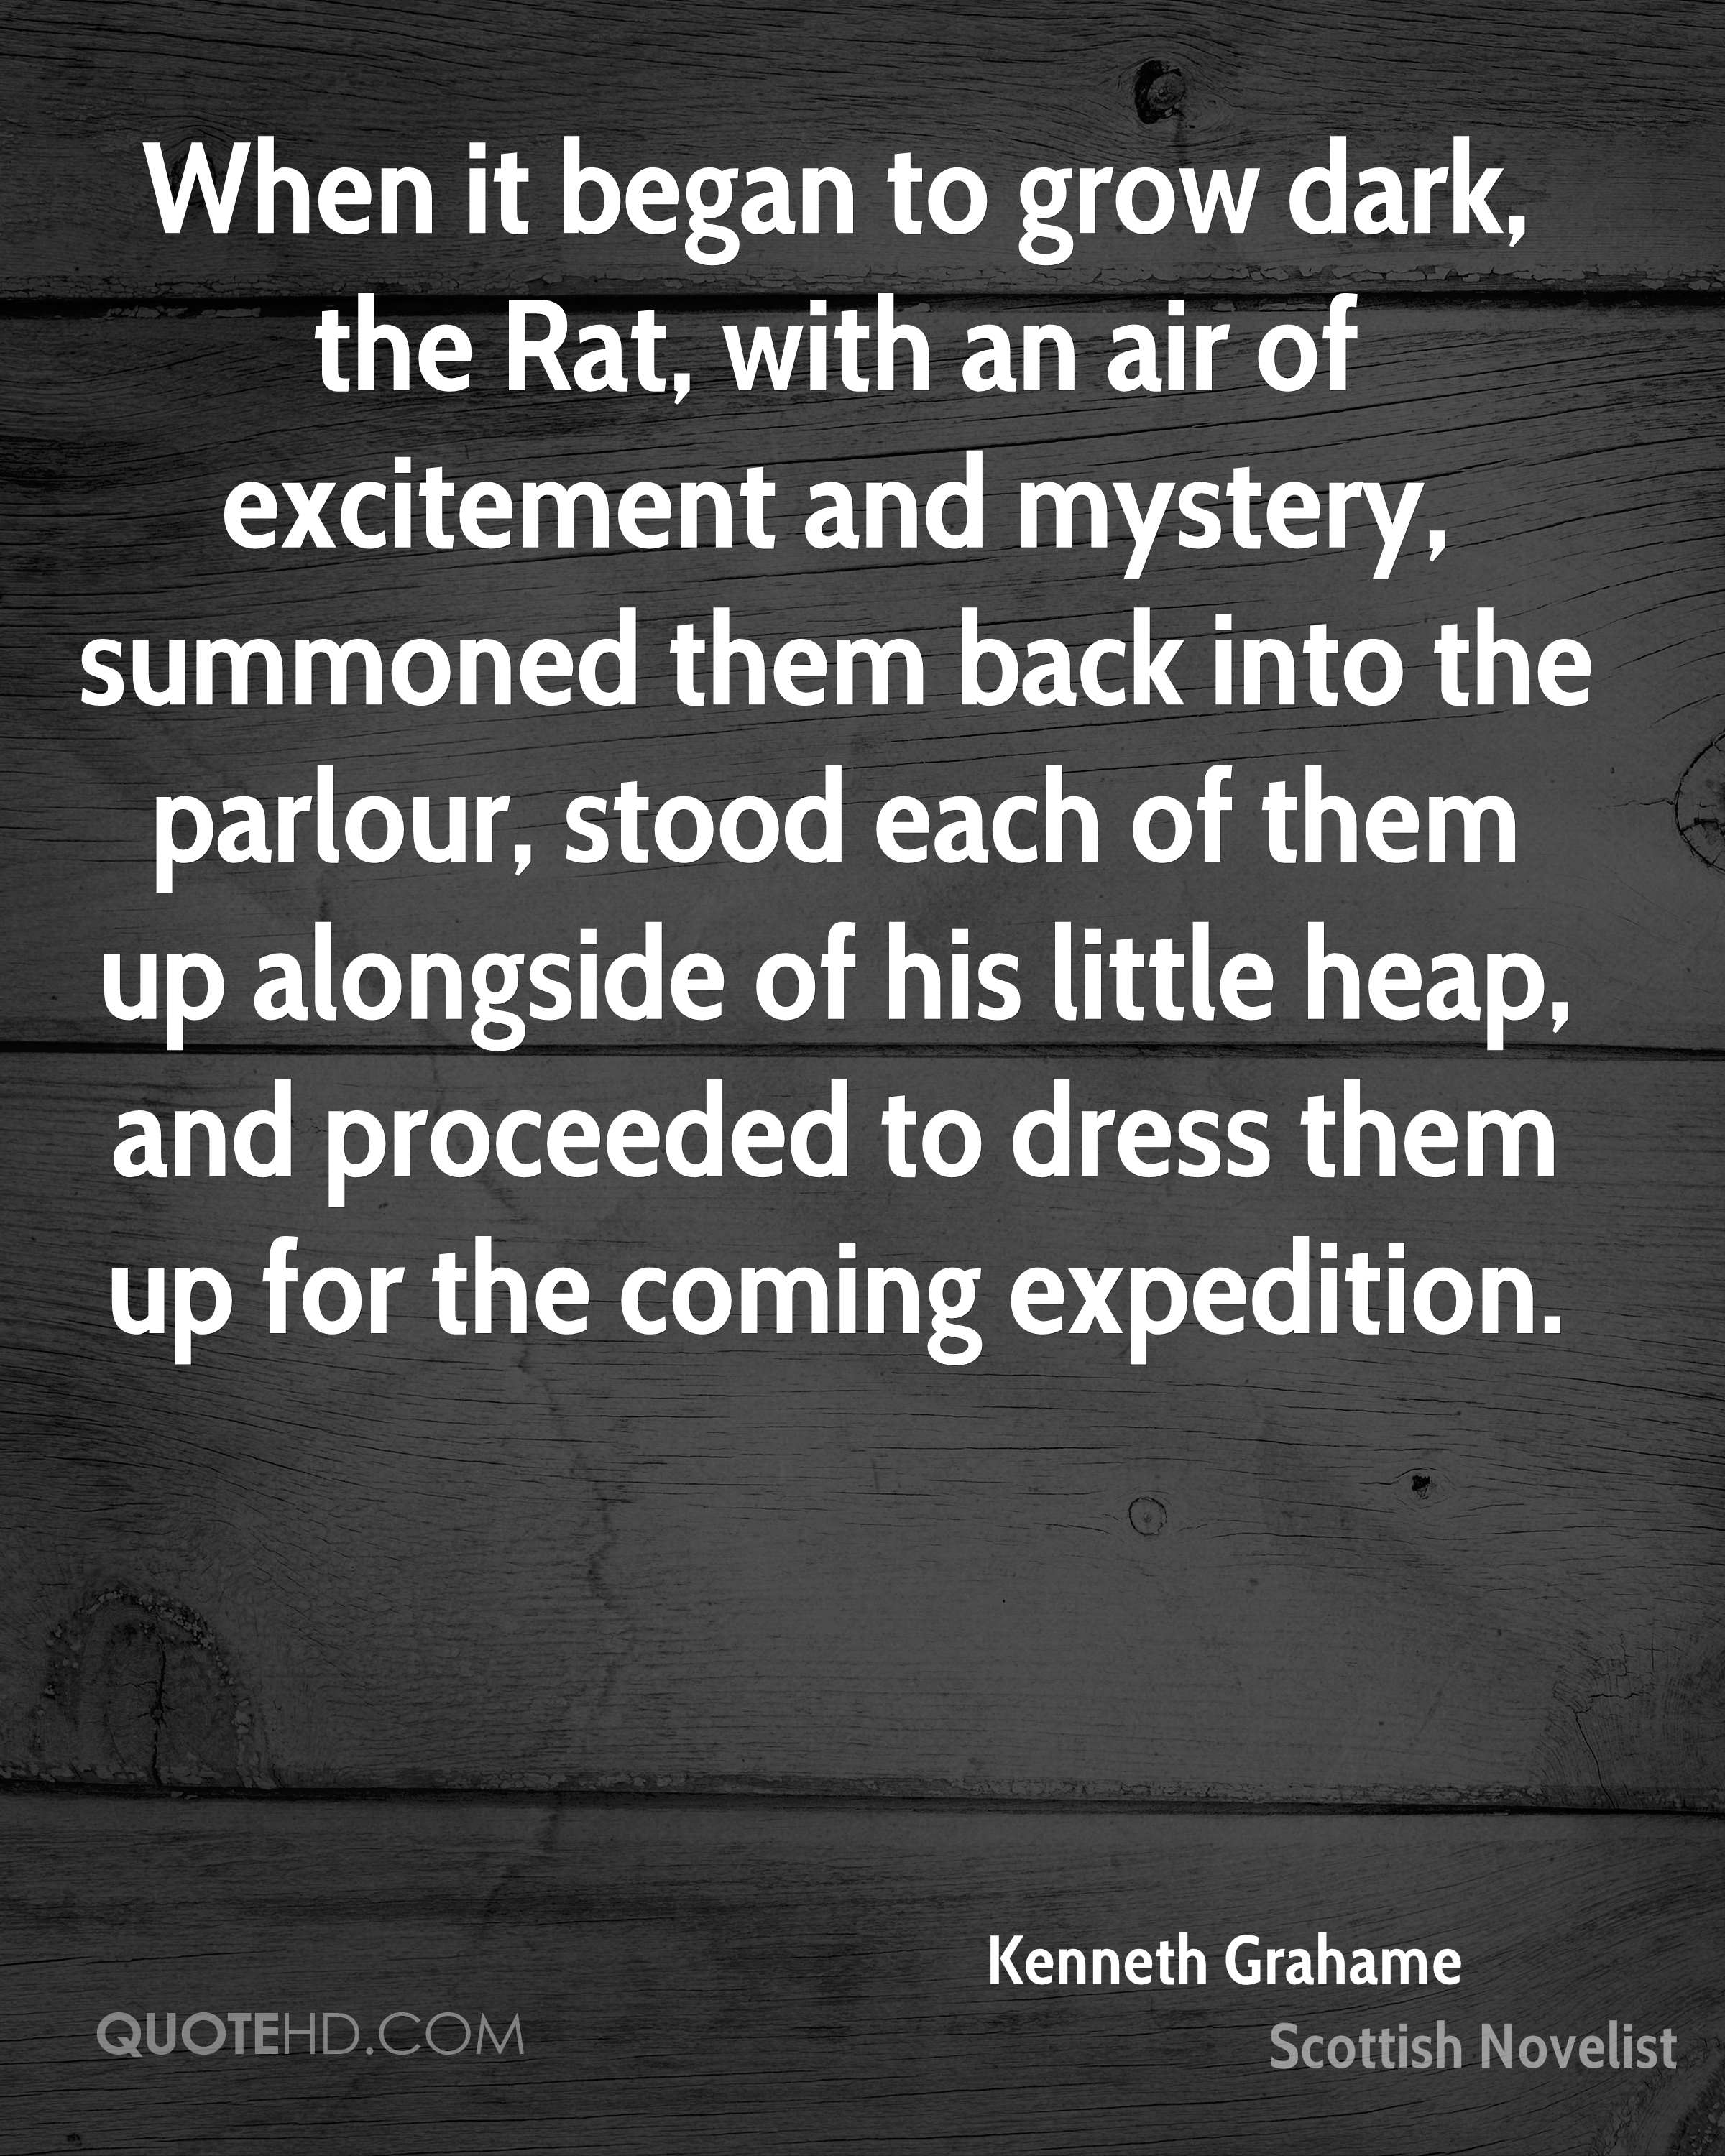 When it began to grow dark, the Rat, with an air of excitement and mystery, summoned them back into the parlour, stood each of them up alongside of his little heap, and proceeded to dress them up for the coming expedition.